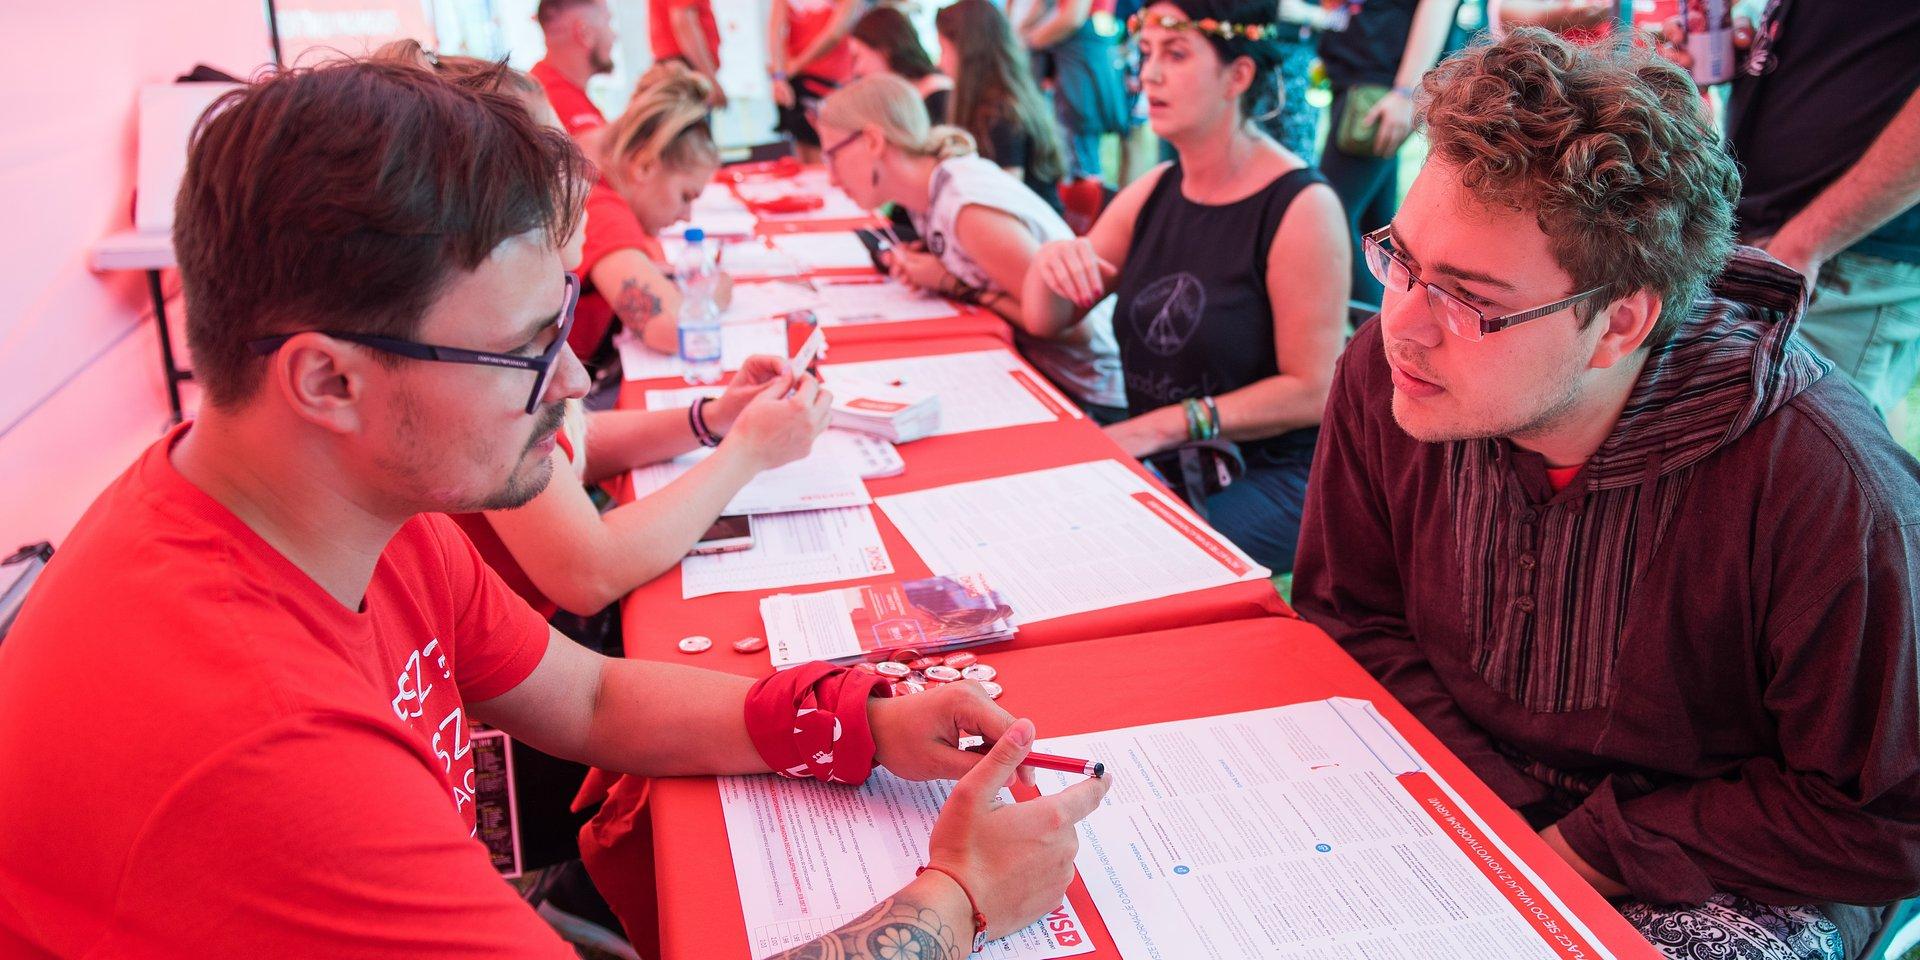 Bone marrow donor registration is a staple at Grand Finale fundraisers and festivals!